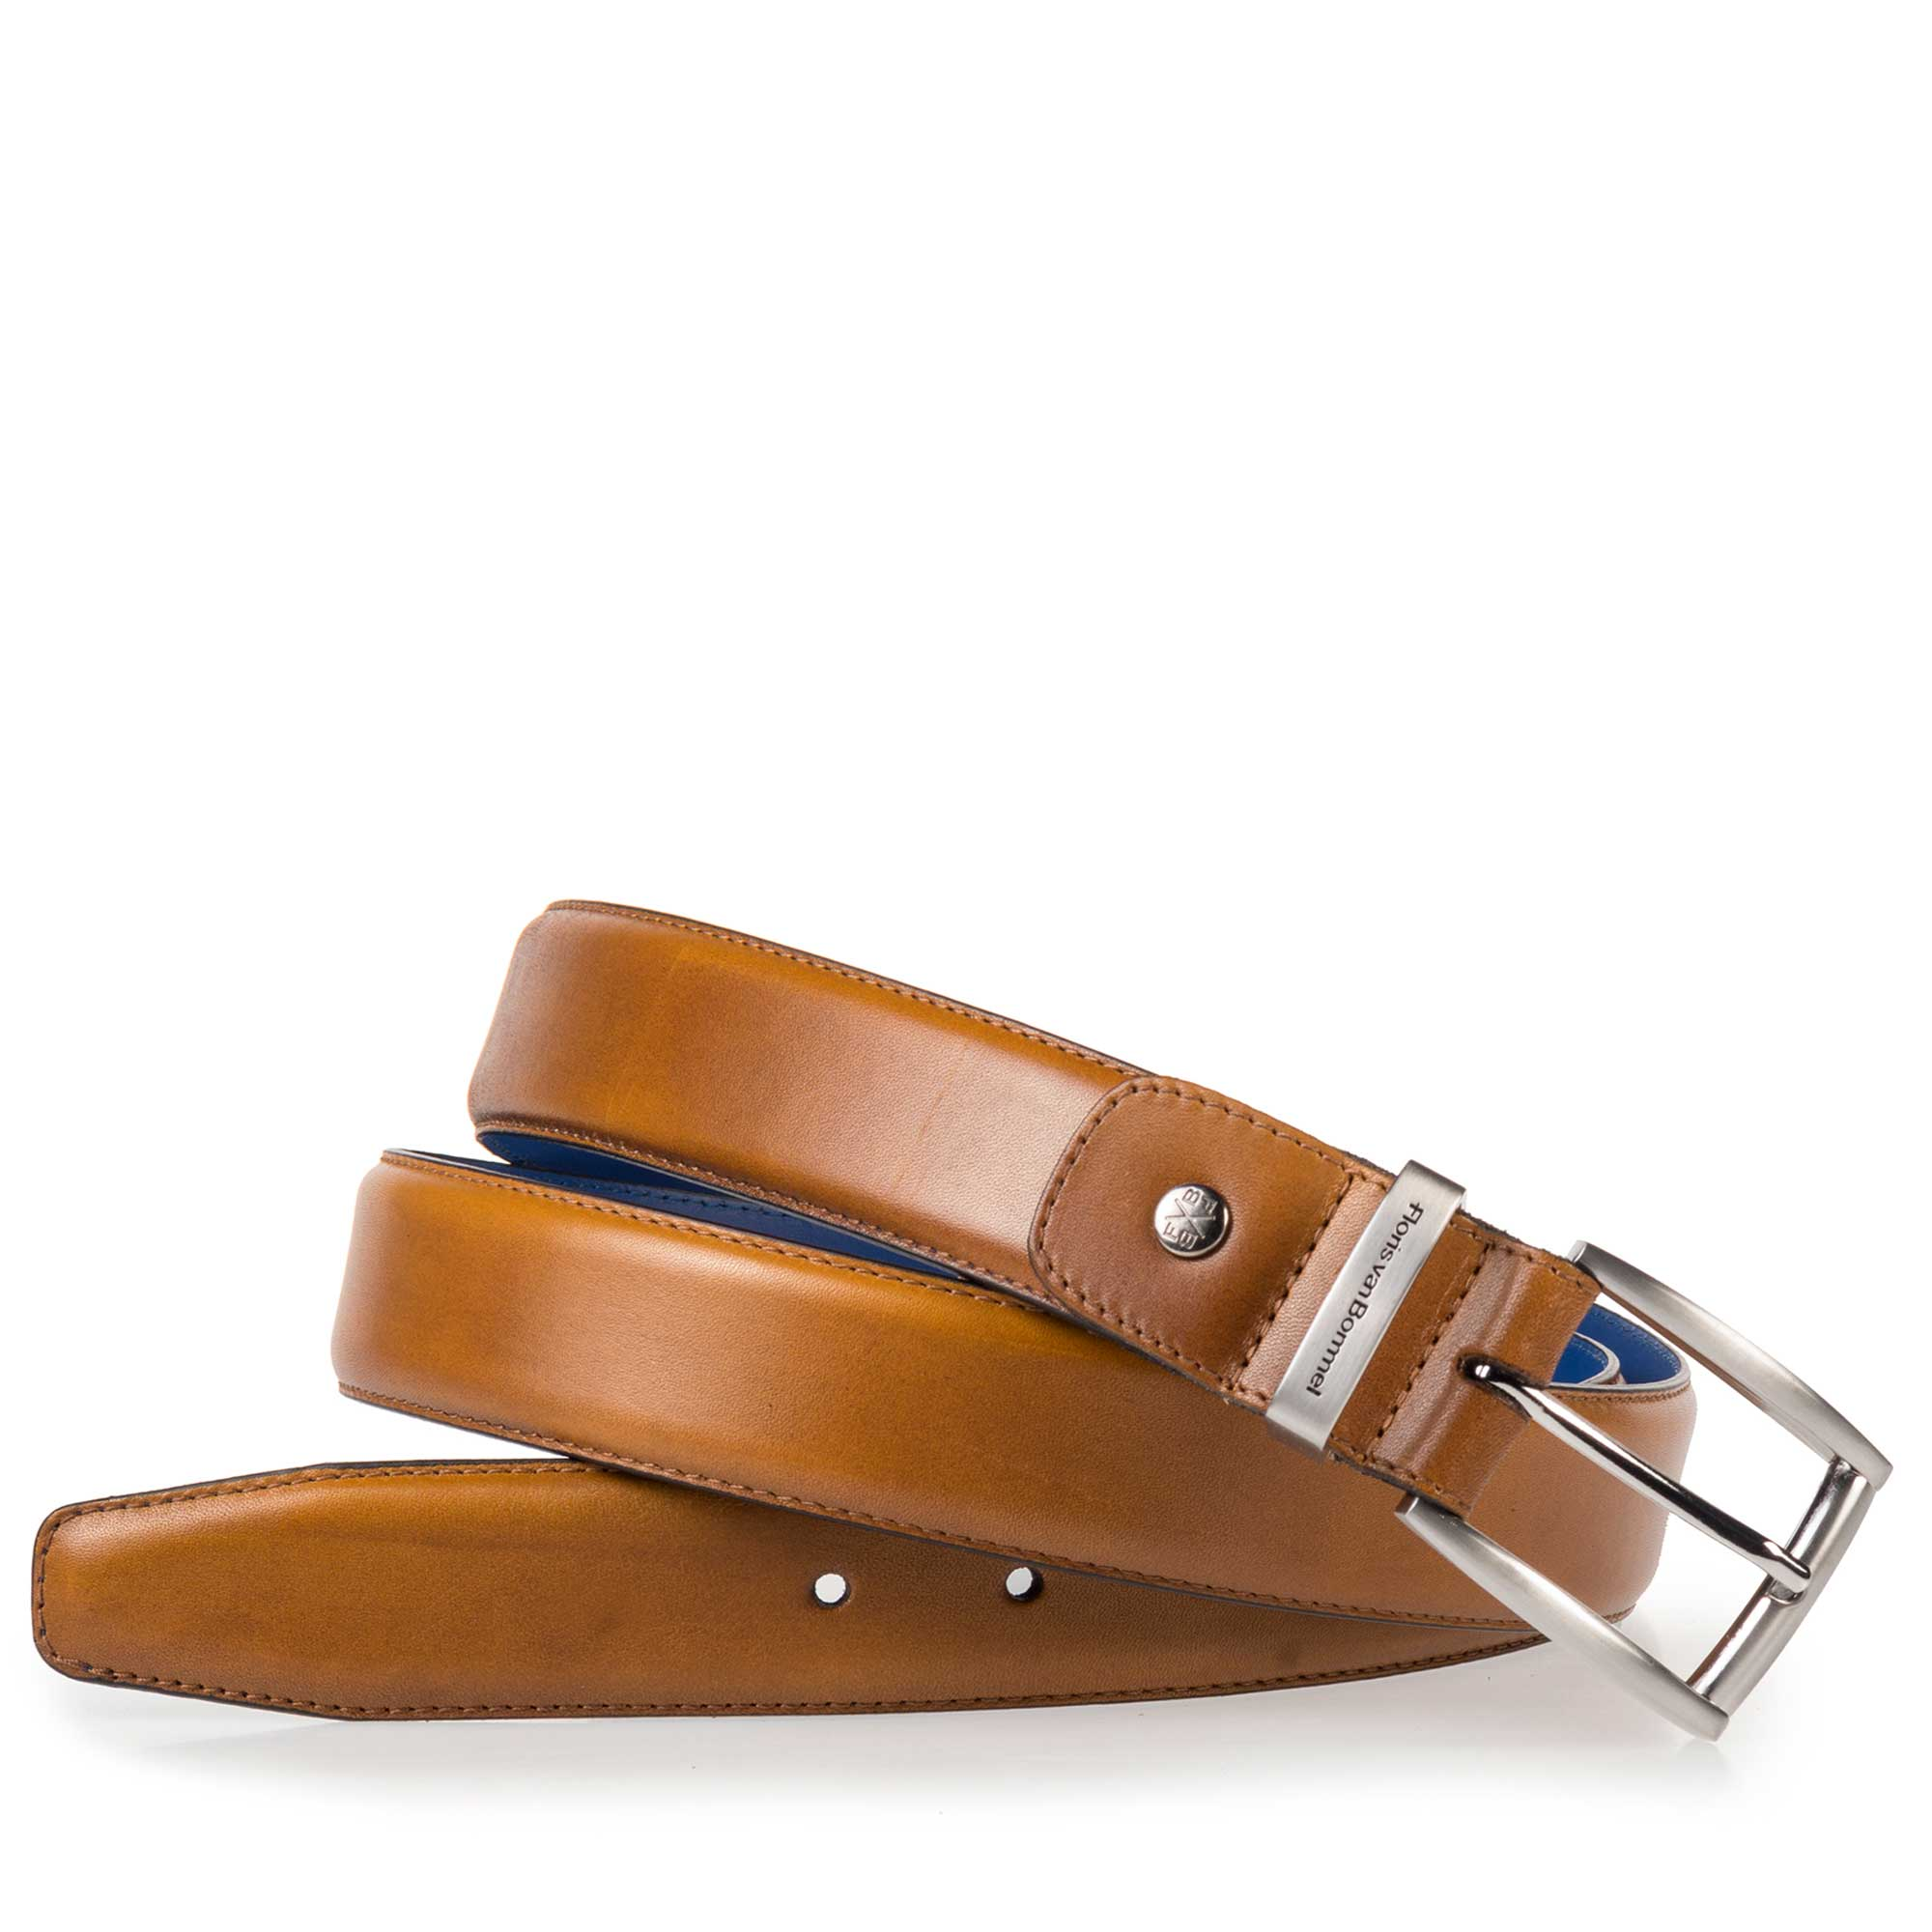 75144/09 - Light cognac-coloured calf's leather belt